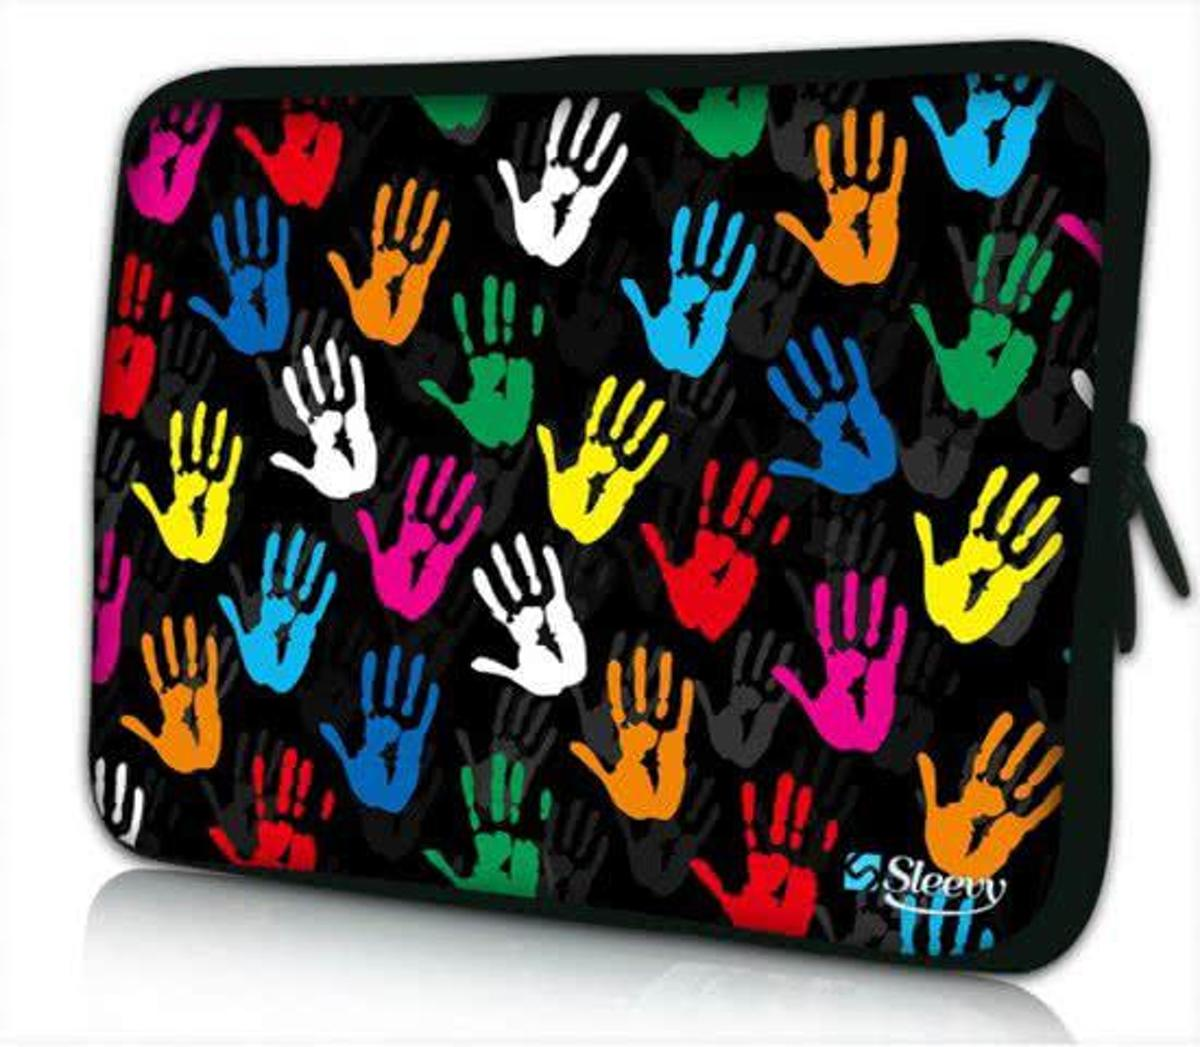 Sleevy 10 laptop/tablet hoes gekleurde handjes - tabletsleeve - tablet sleeve - ipad sleeve